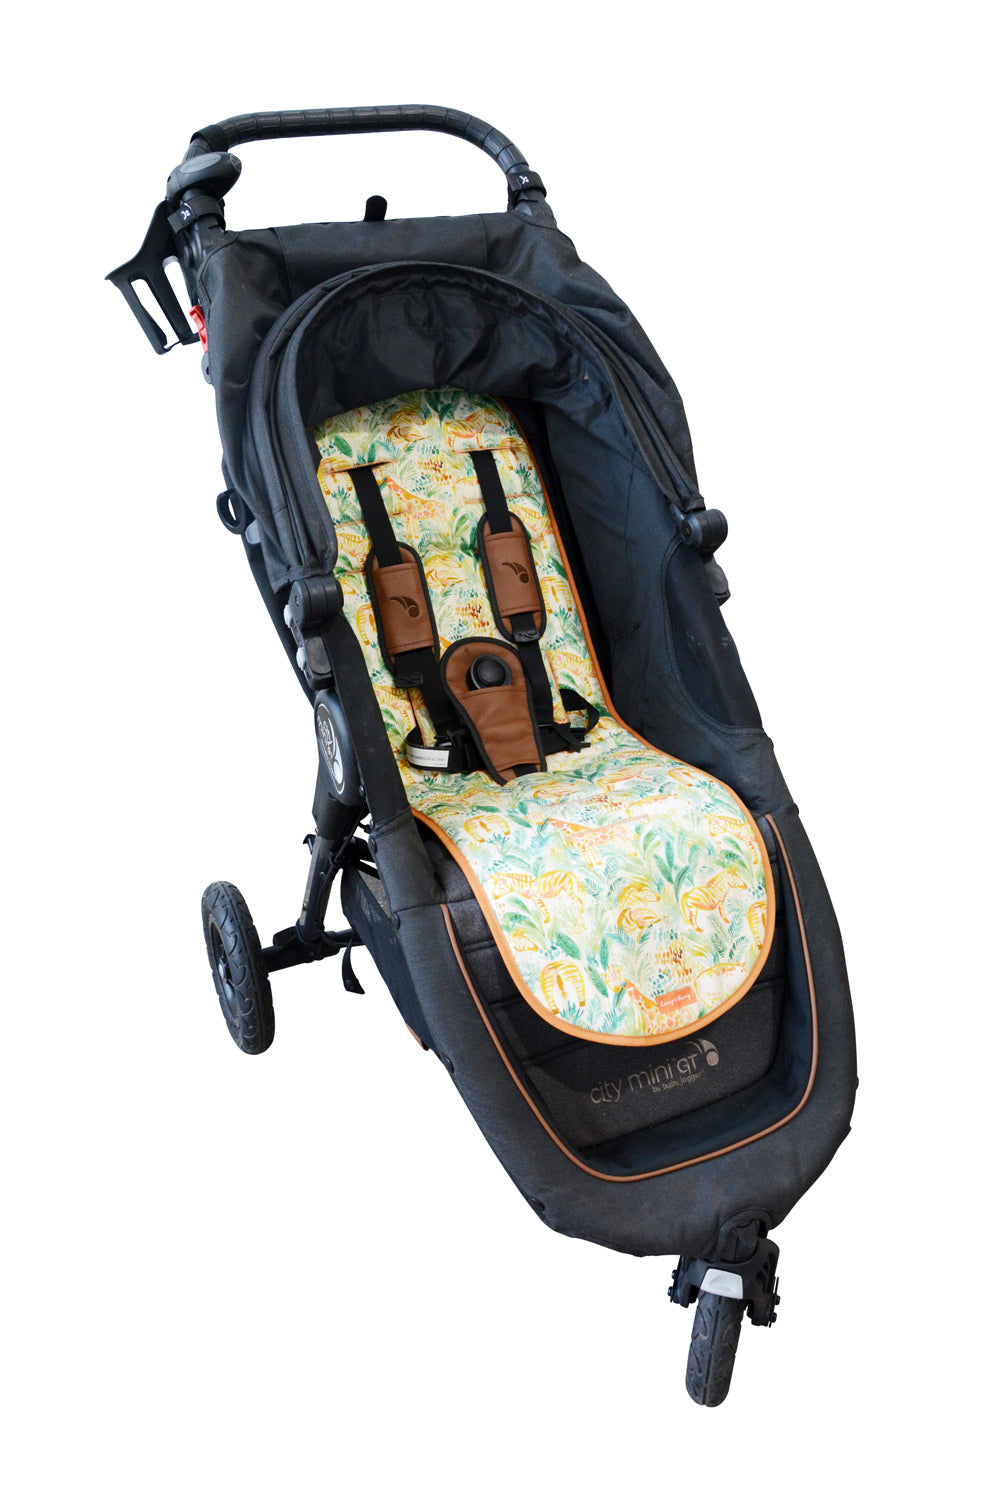 Jungle Safari Luxe Pram Liner